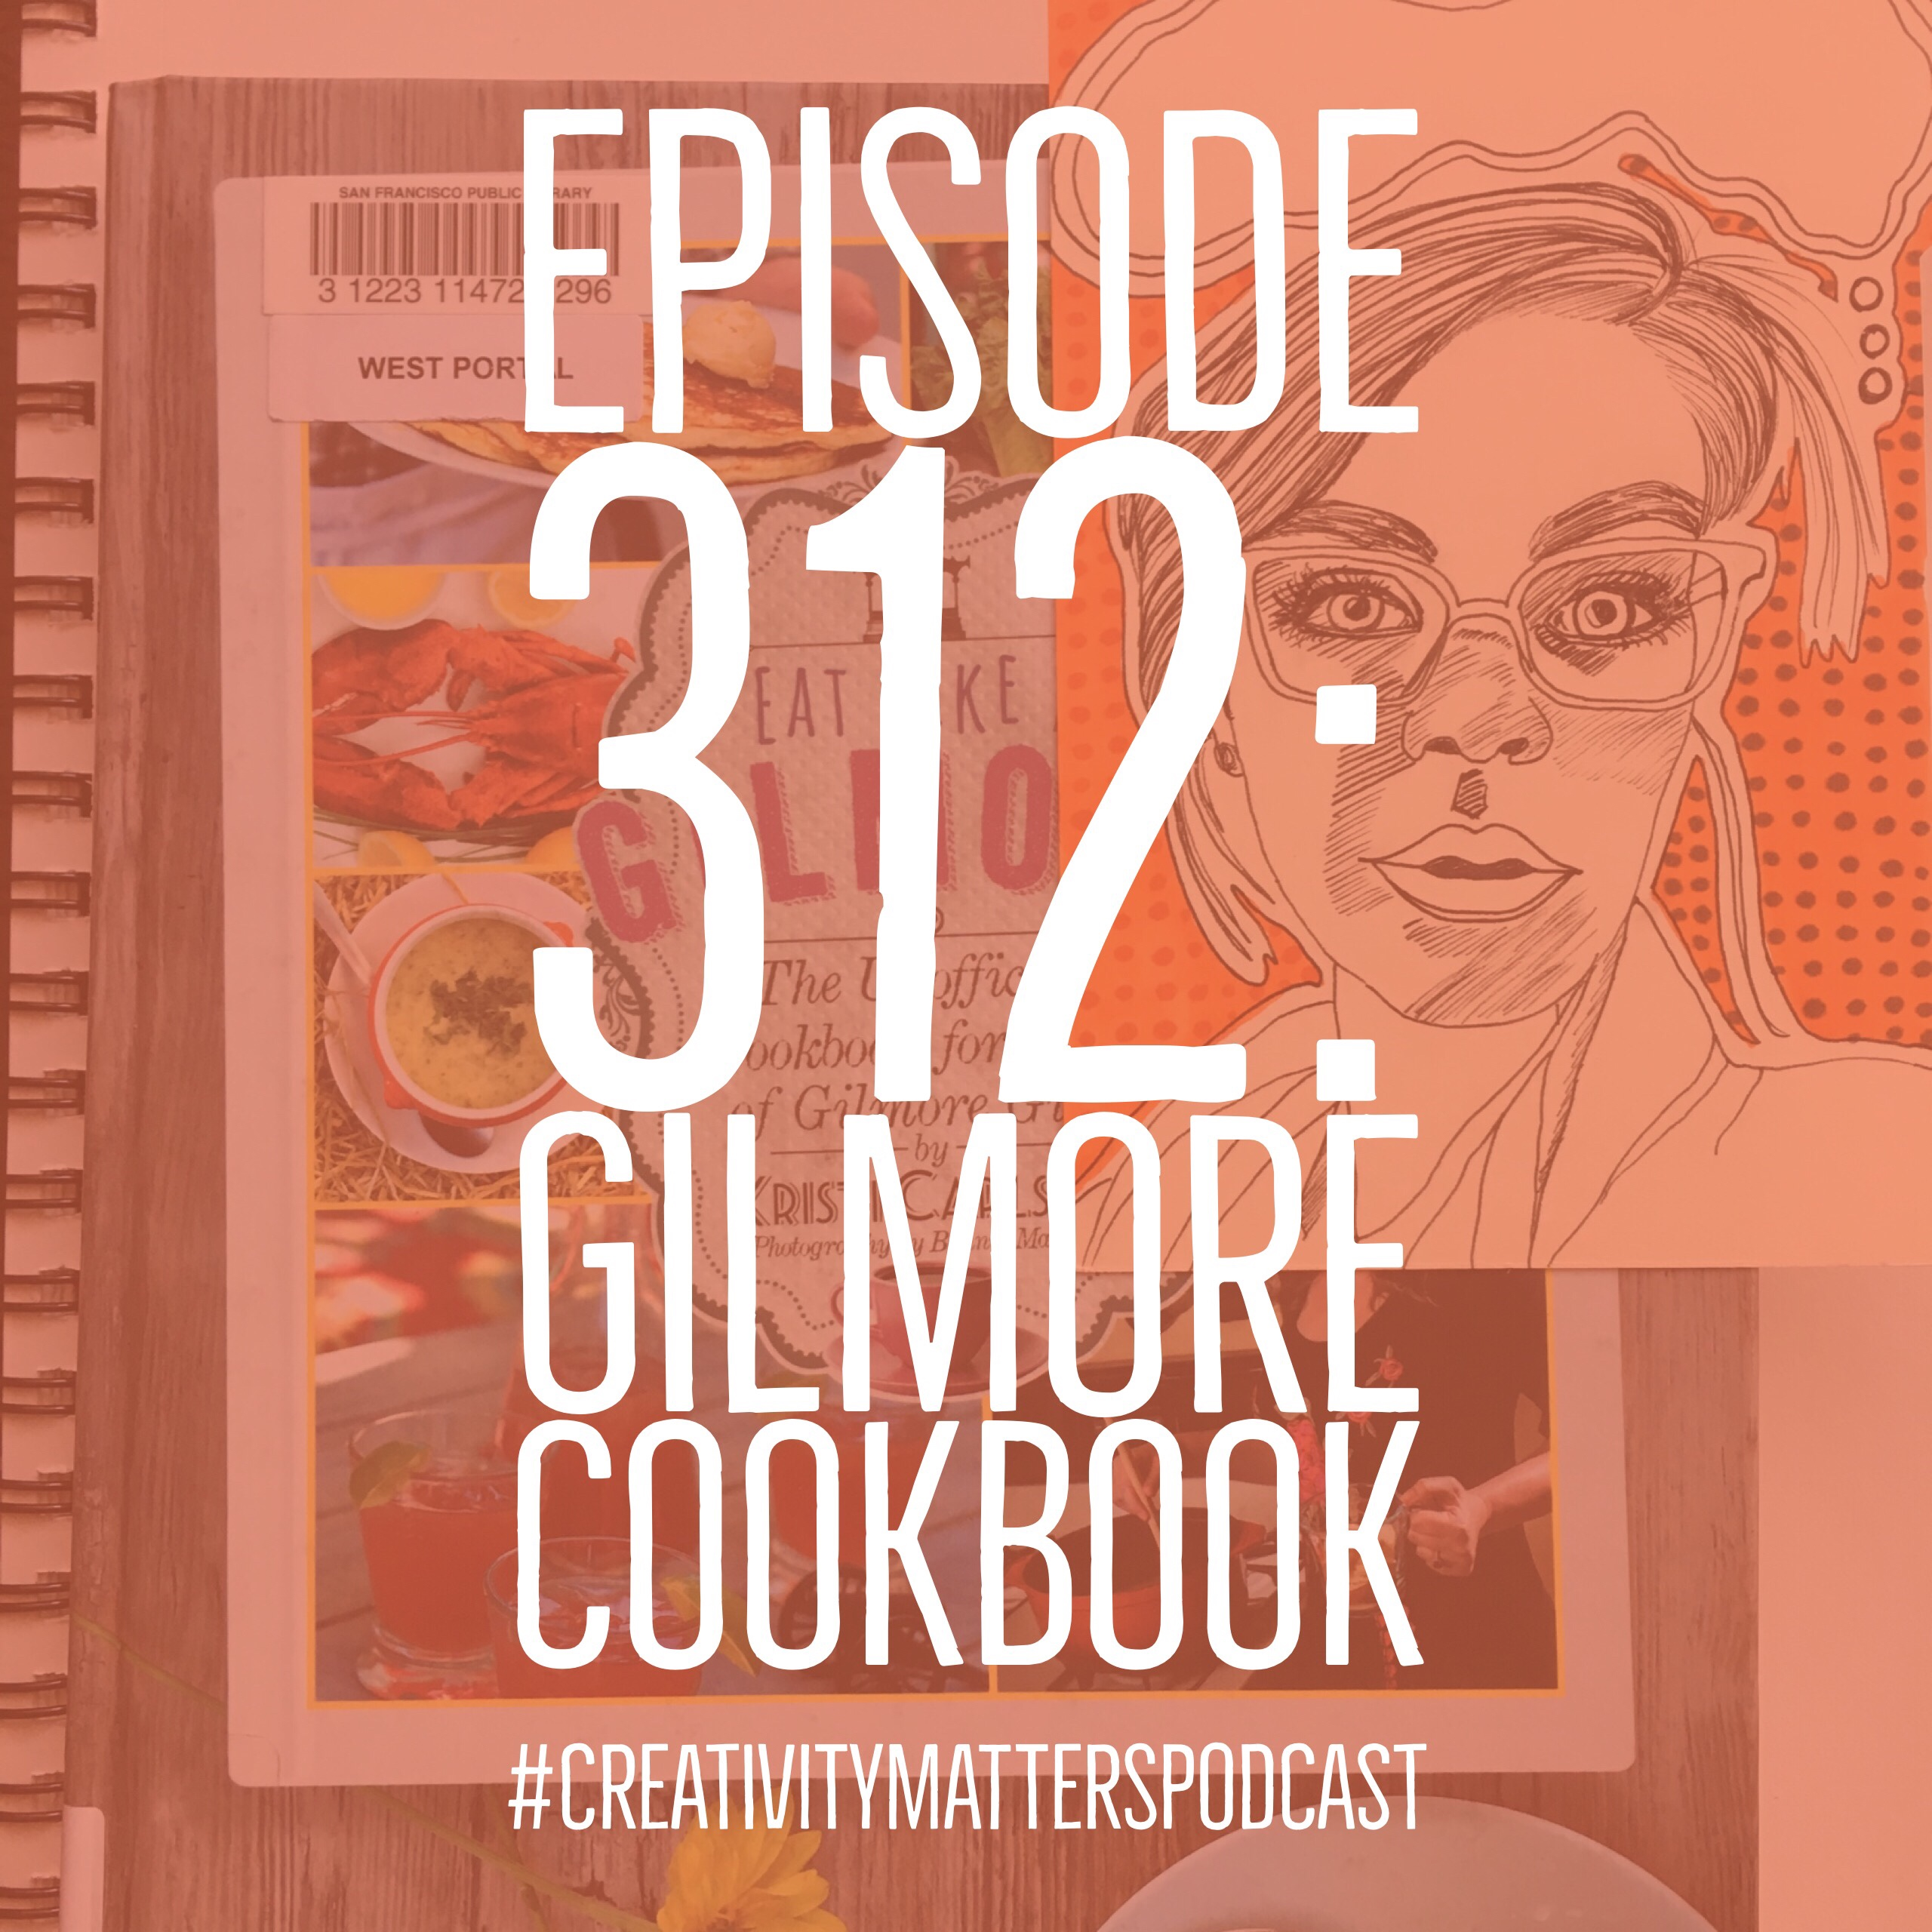 Episode 312: Gilmore Cookbook